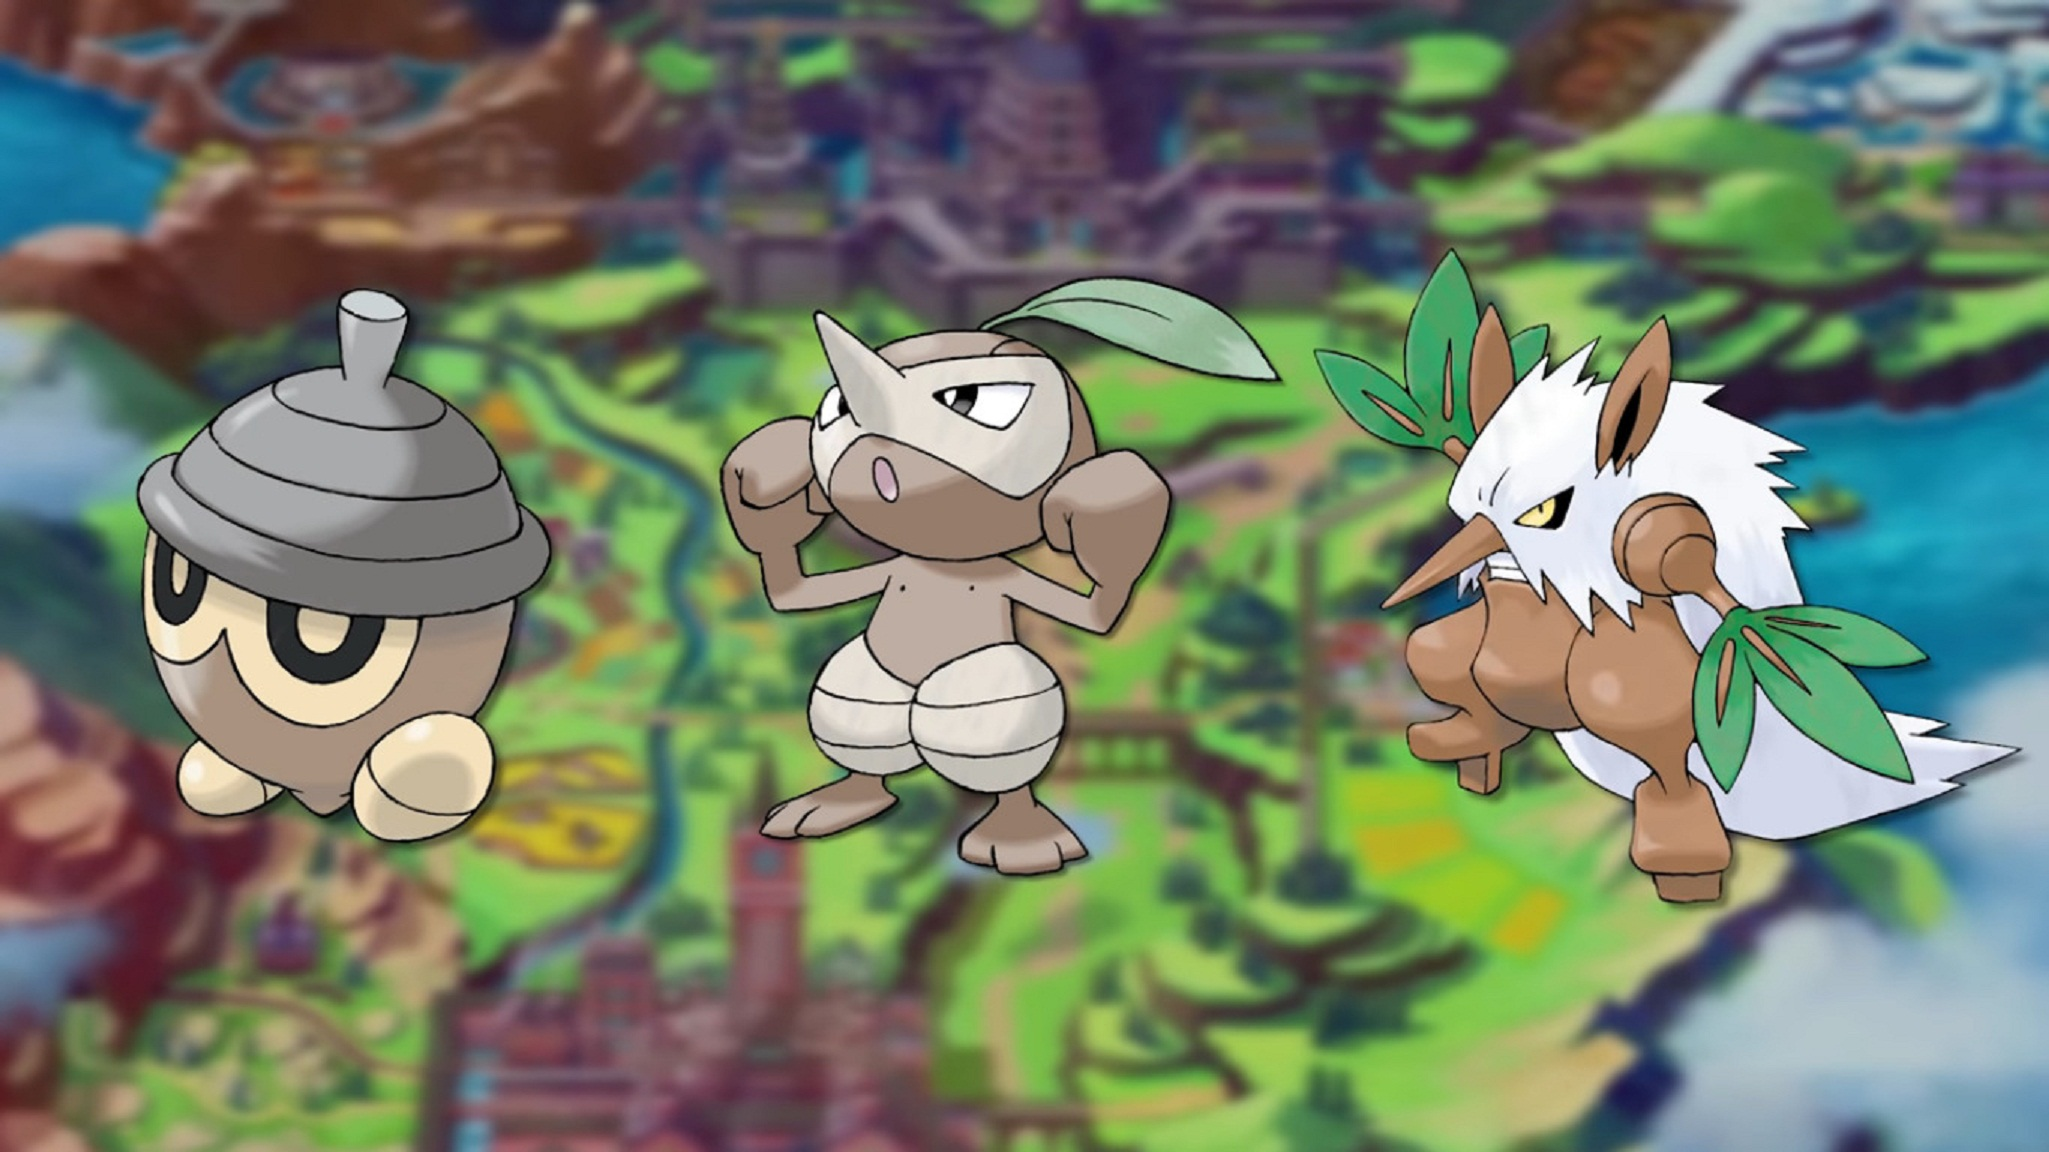 Thanks To A Recent News Drop, We Know There'll Be A Pokemon With A Gun In Latest Expansions